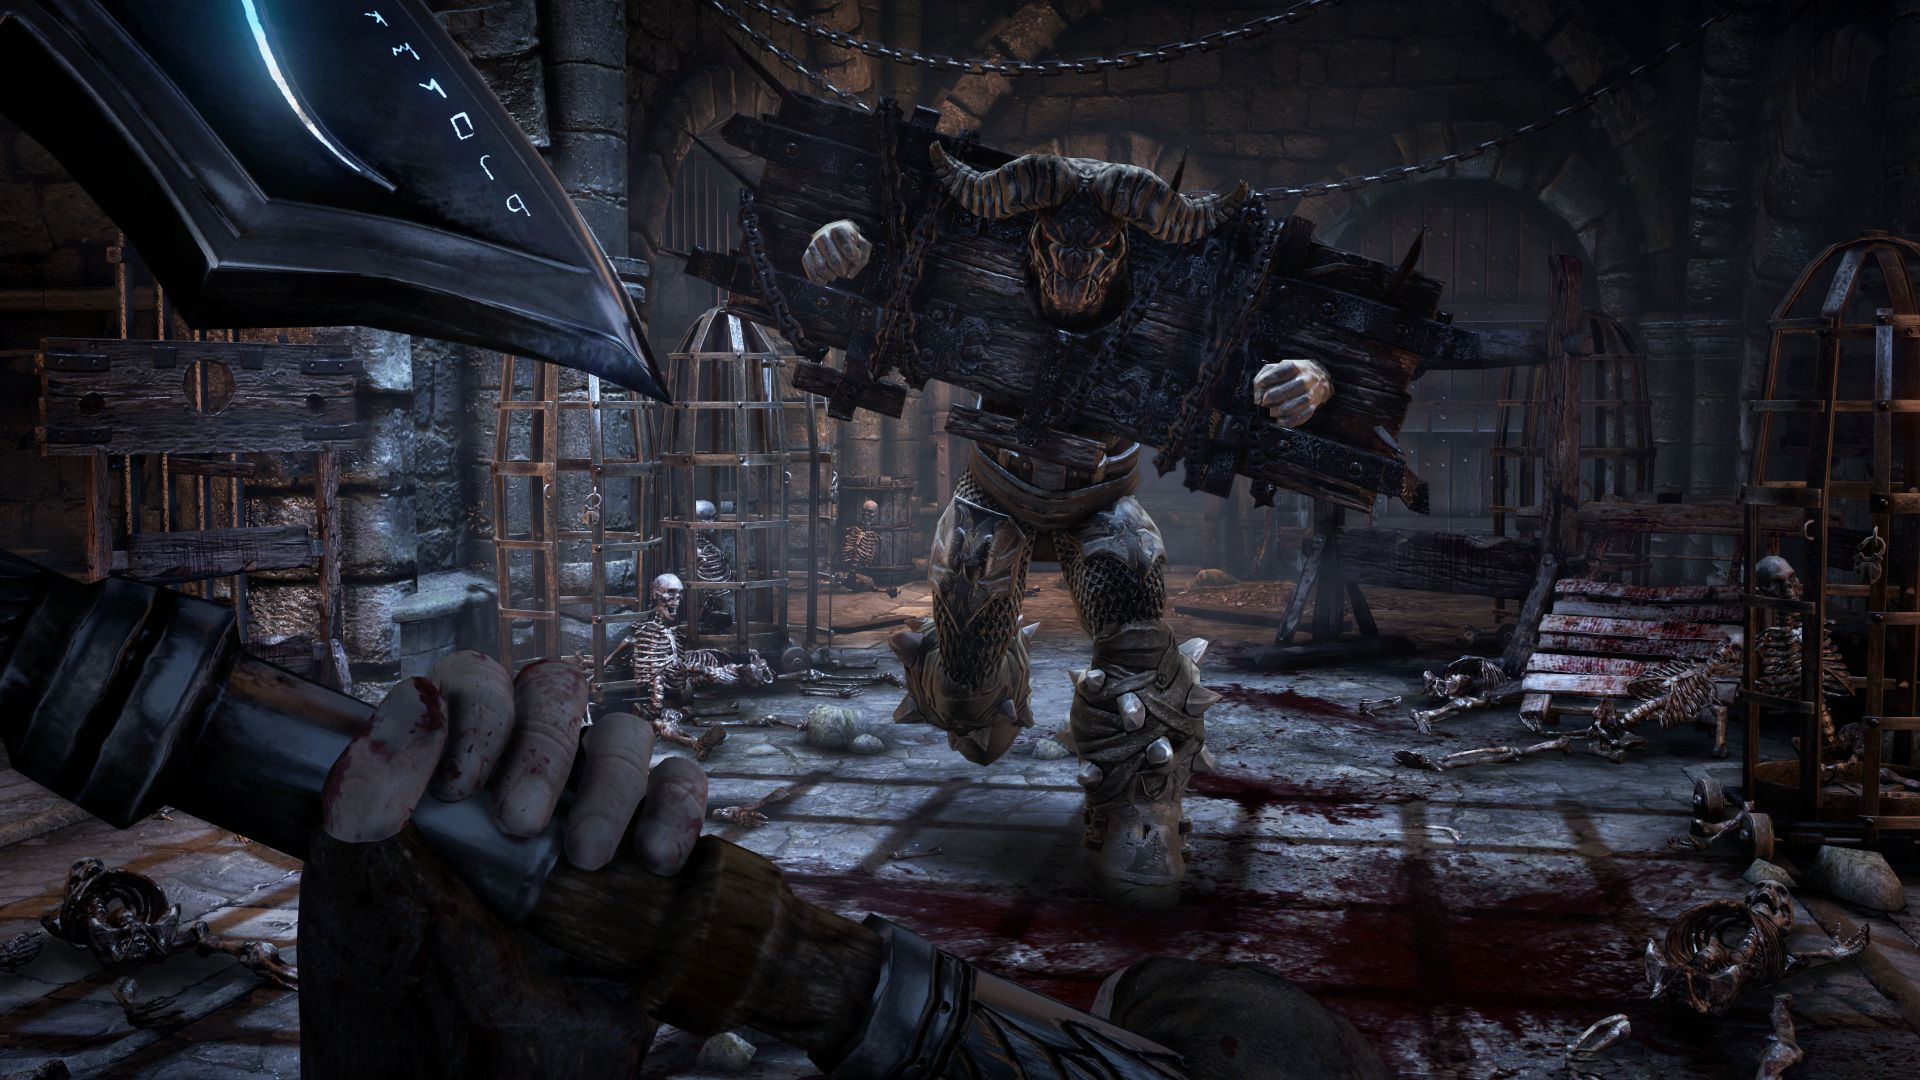 Hellraid Is Hundreds Of Hours Long, Says Techland #26916